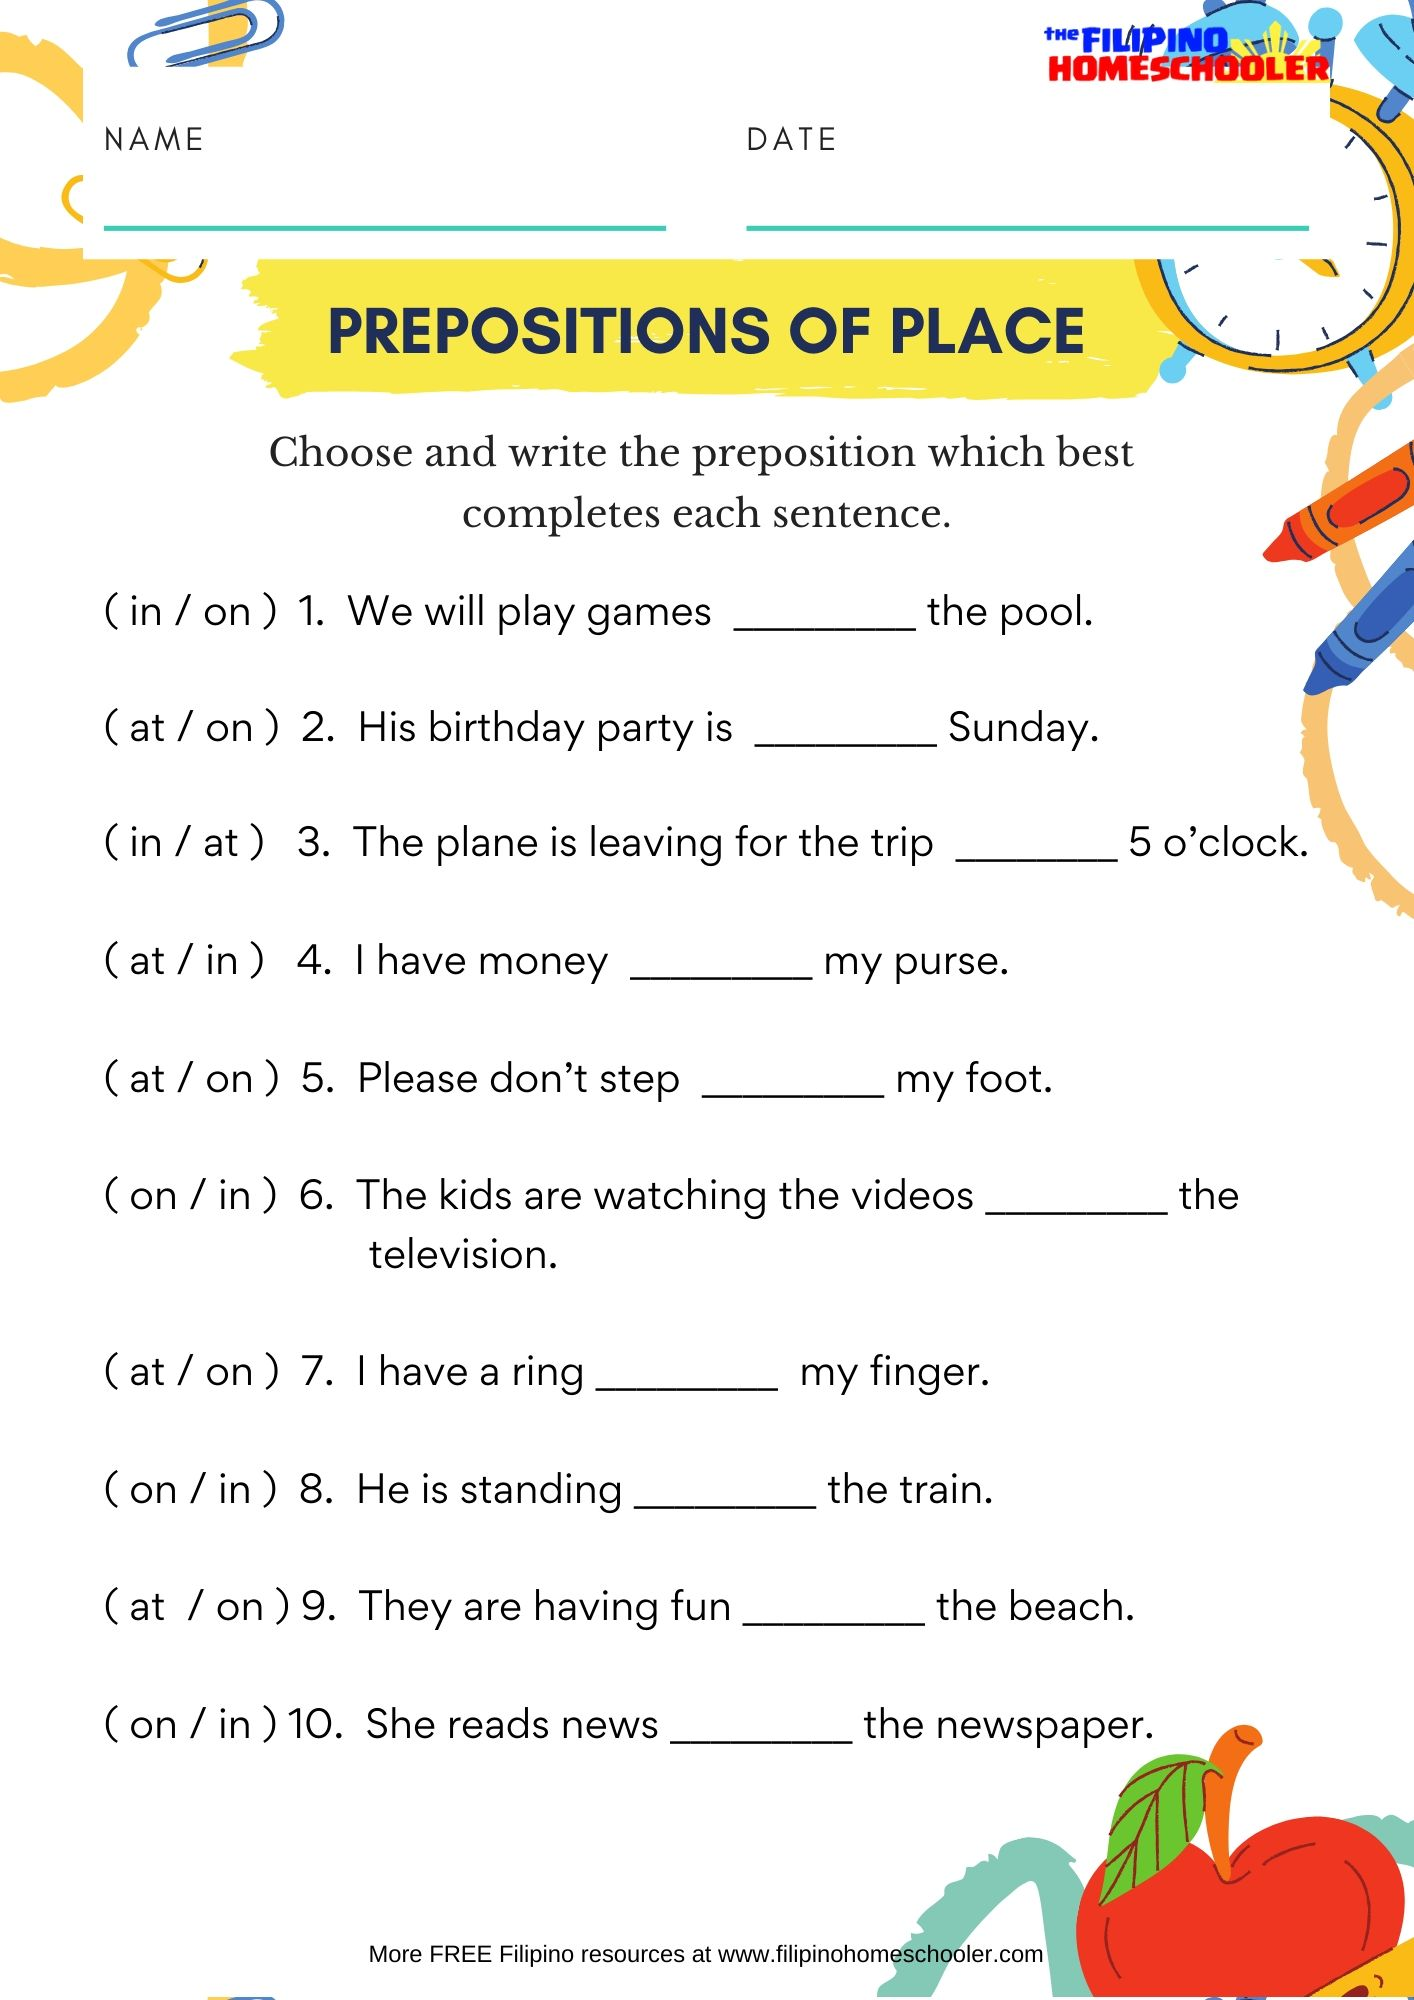 In On At Prepositions Of Place Worksheet